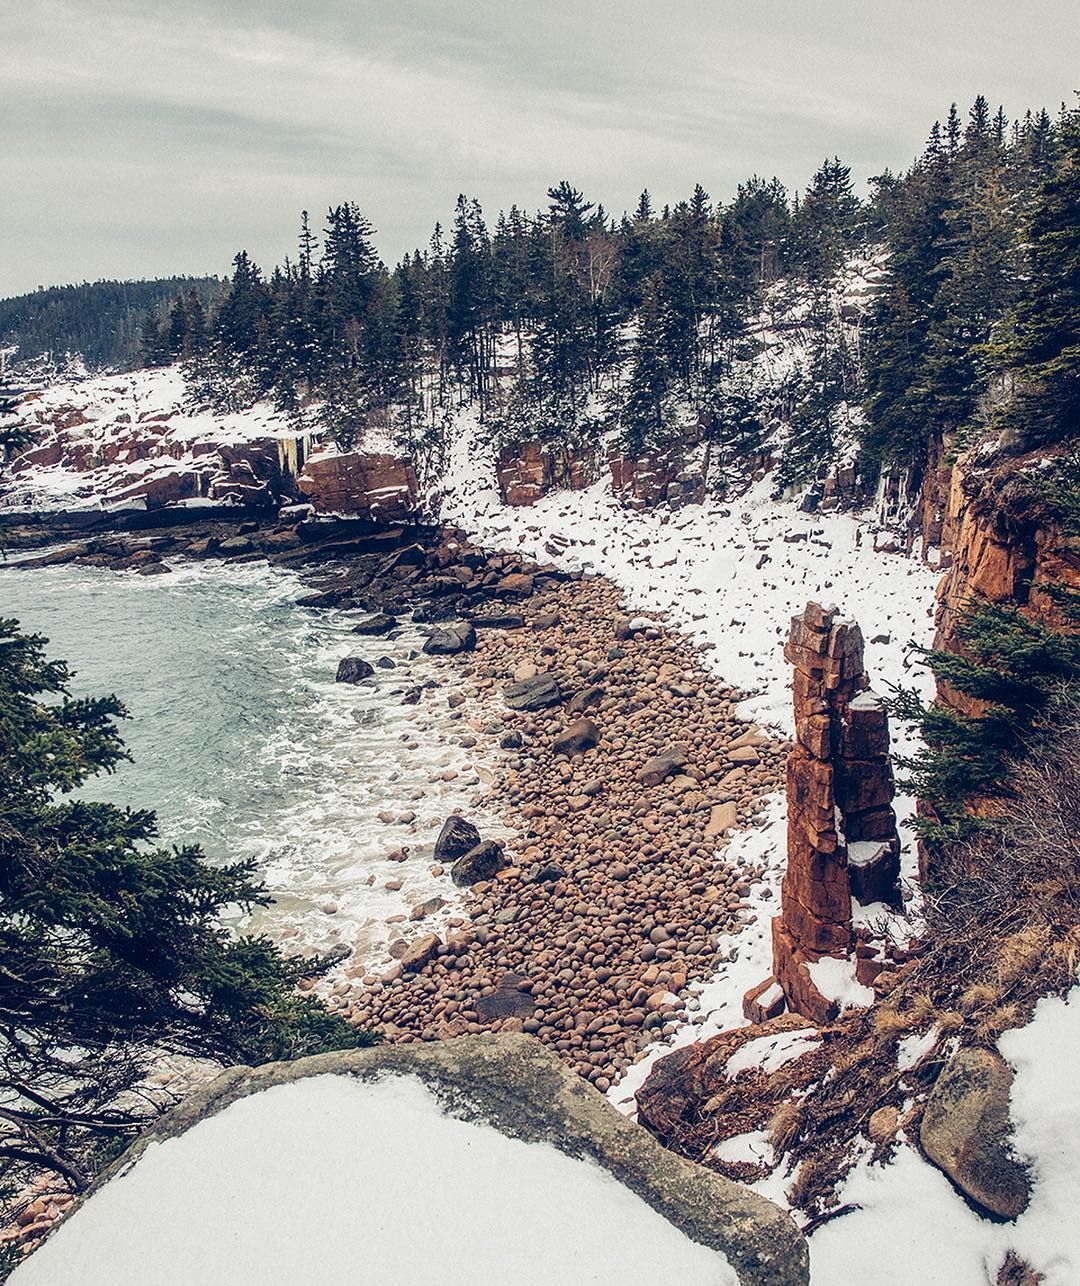 Landscape photography by @iloveacadianationalpark edited